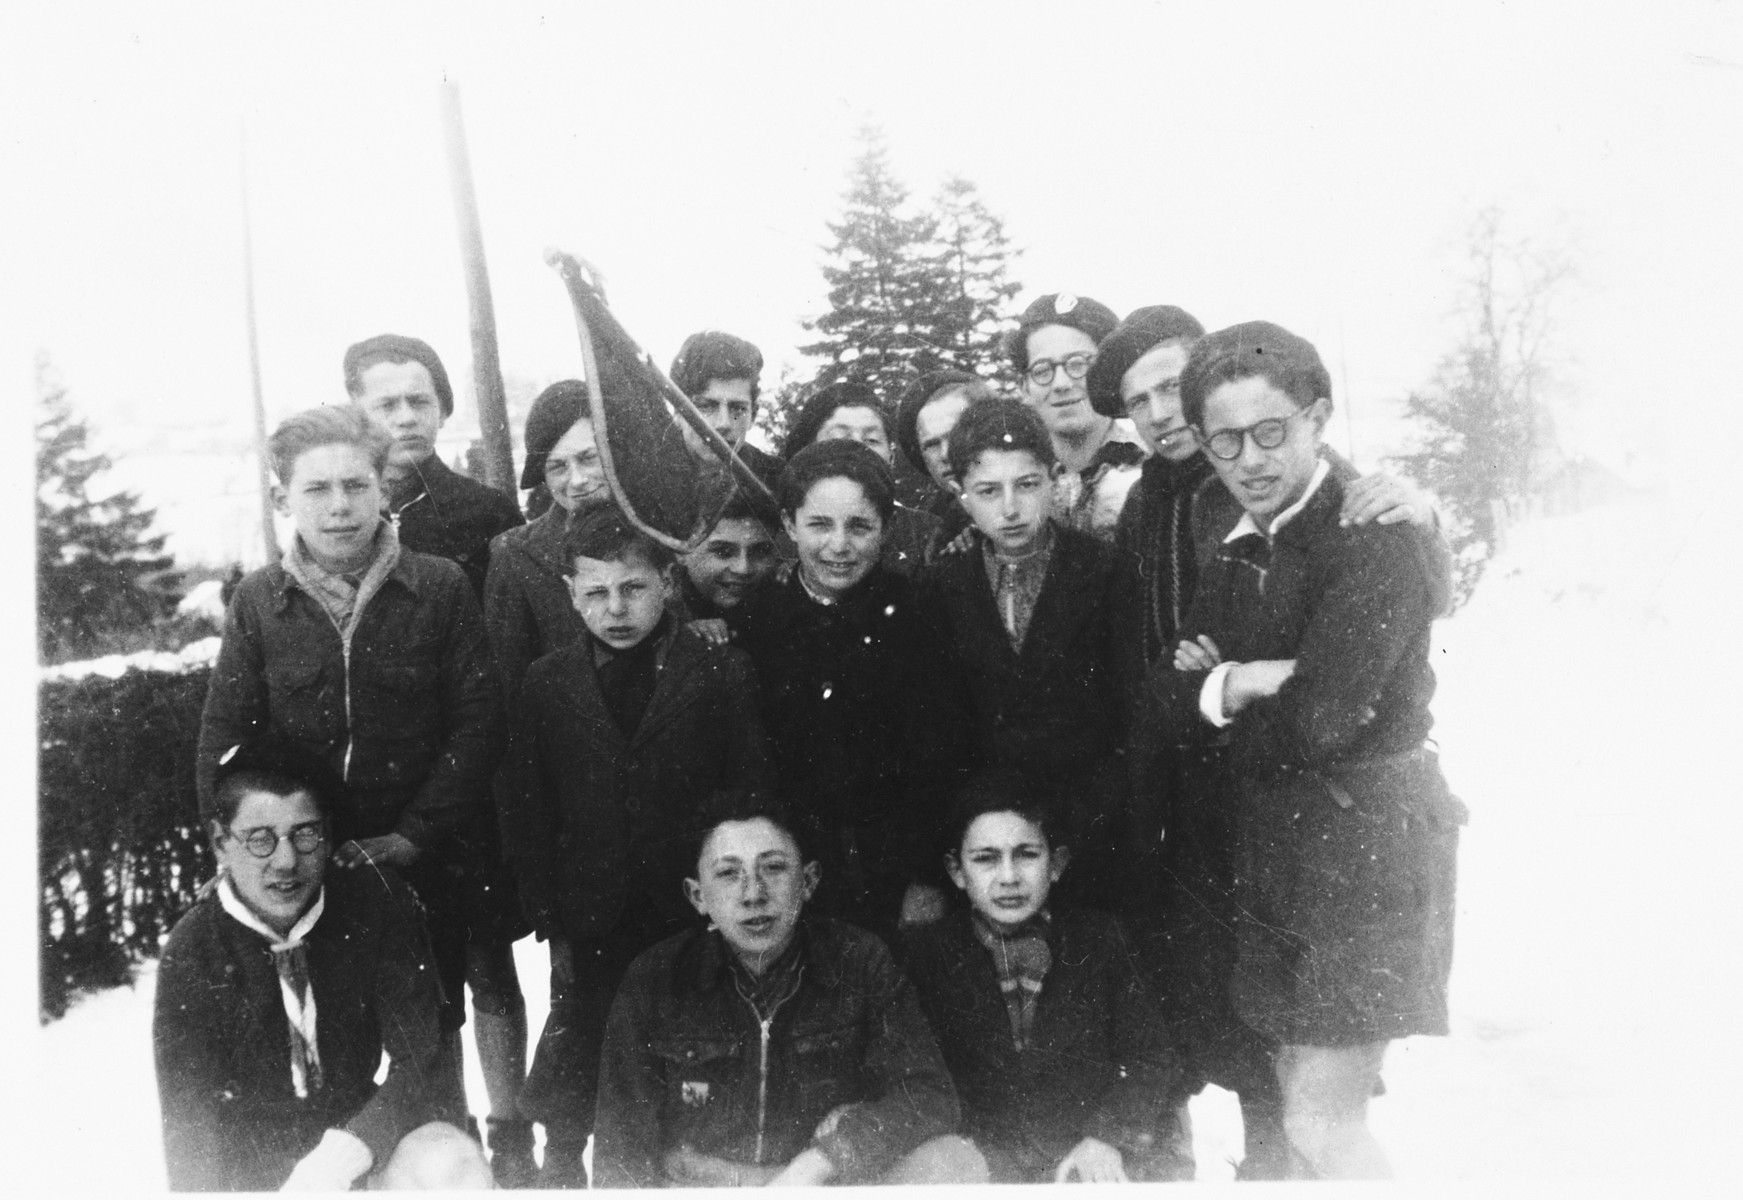 Group portrait of Jewish DP youth from the Poulouzat children's home outside in the snow.   Among those pictured are Herbert Karliner (back row, fifth from the right, partially obscured) and Charles Valmy (standing at the right).